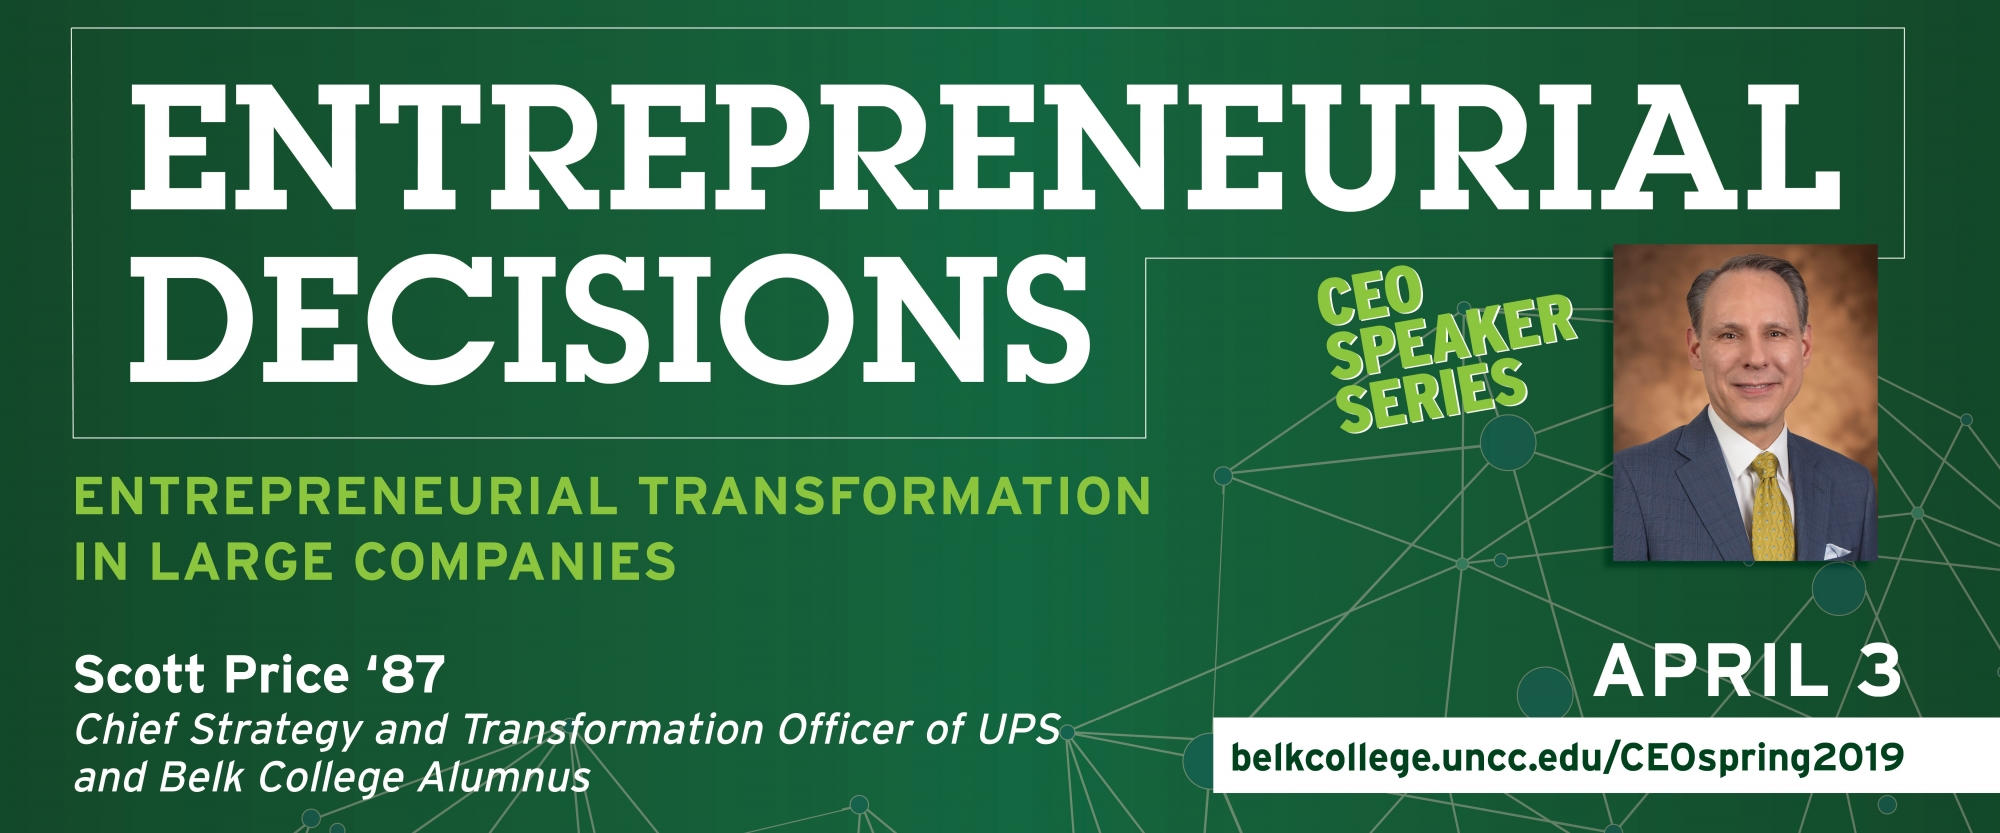 Entrepreneurial Decisions graphic April 3